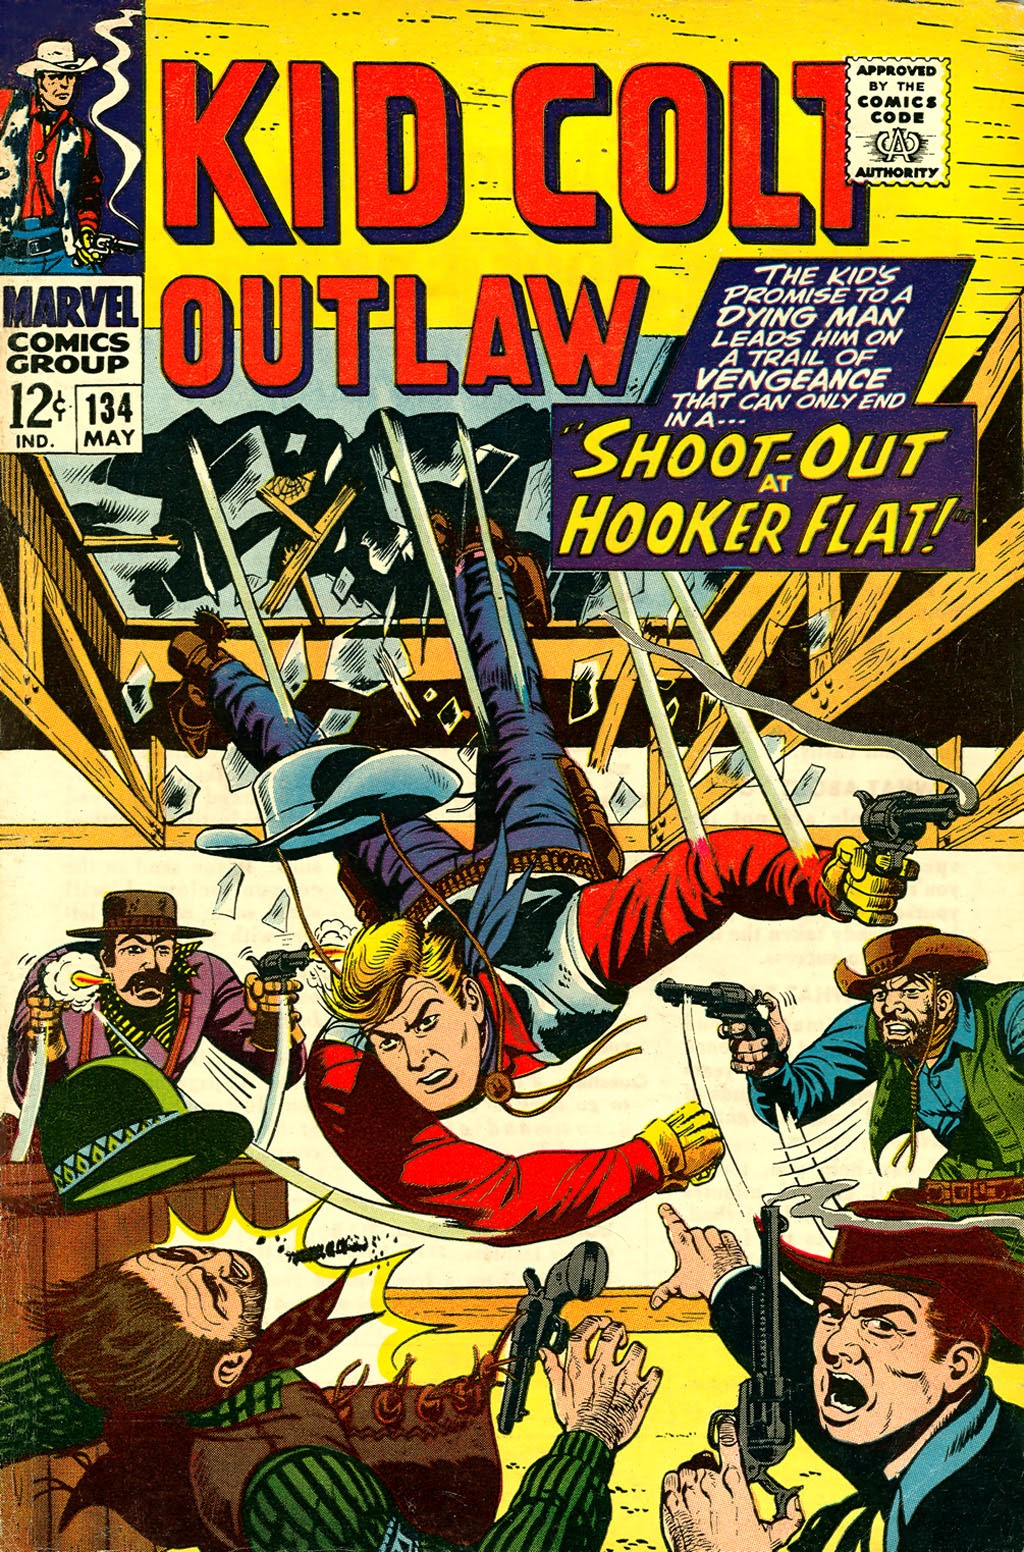 Kid Colt Outlaw issue 134 - Page 1